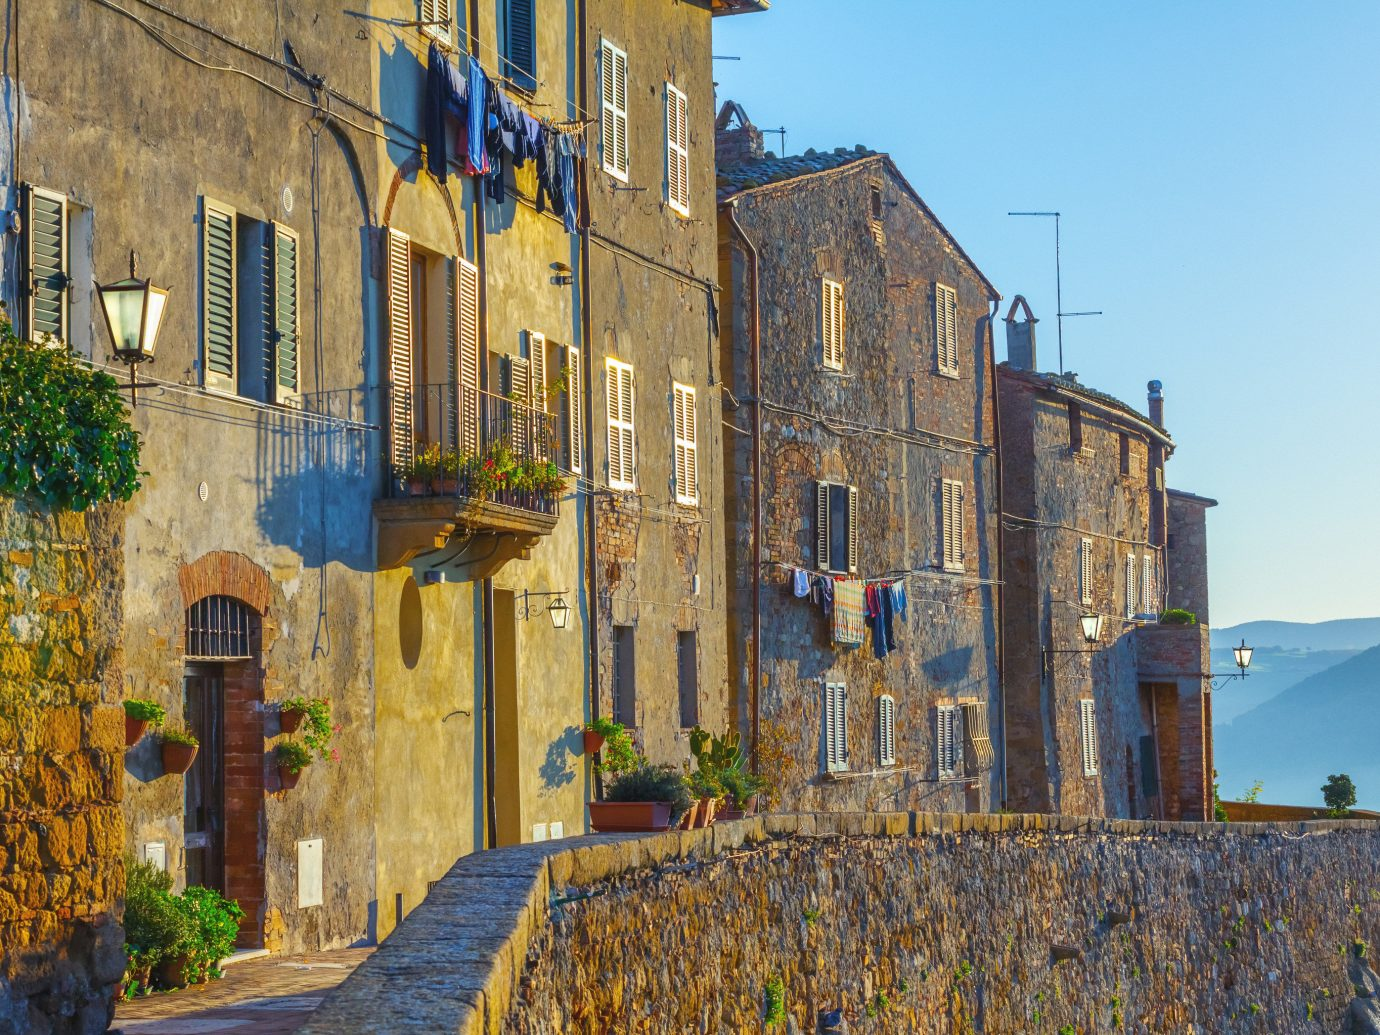 Italy Trip Ideas Town sky property wall neighbourhood City building house facade tree home street window Village history medieval architecture cottage estate plant